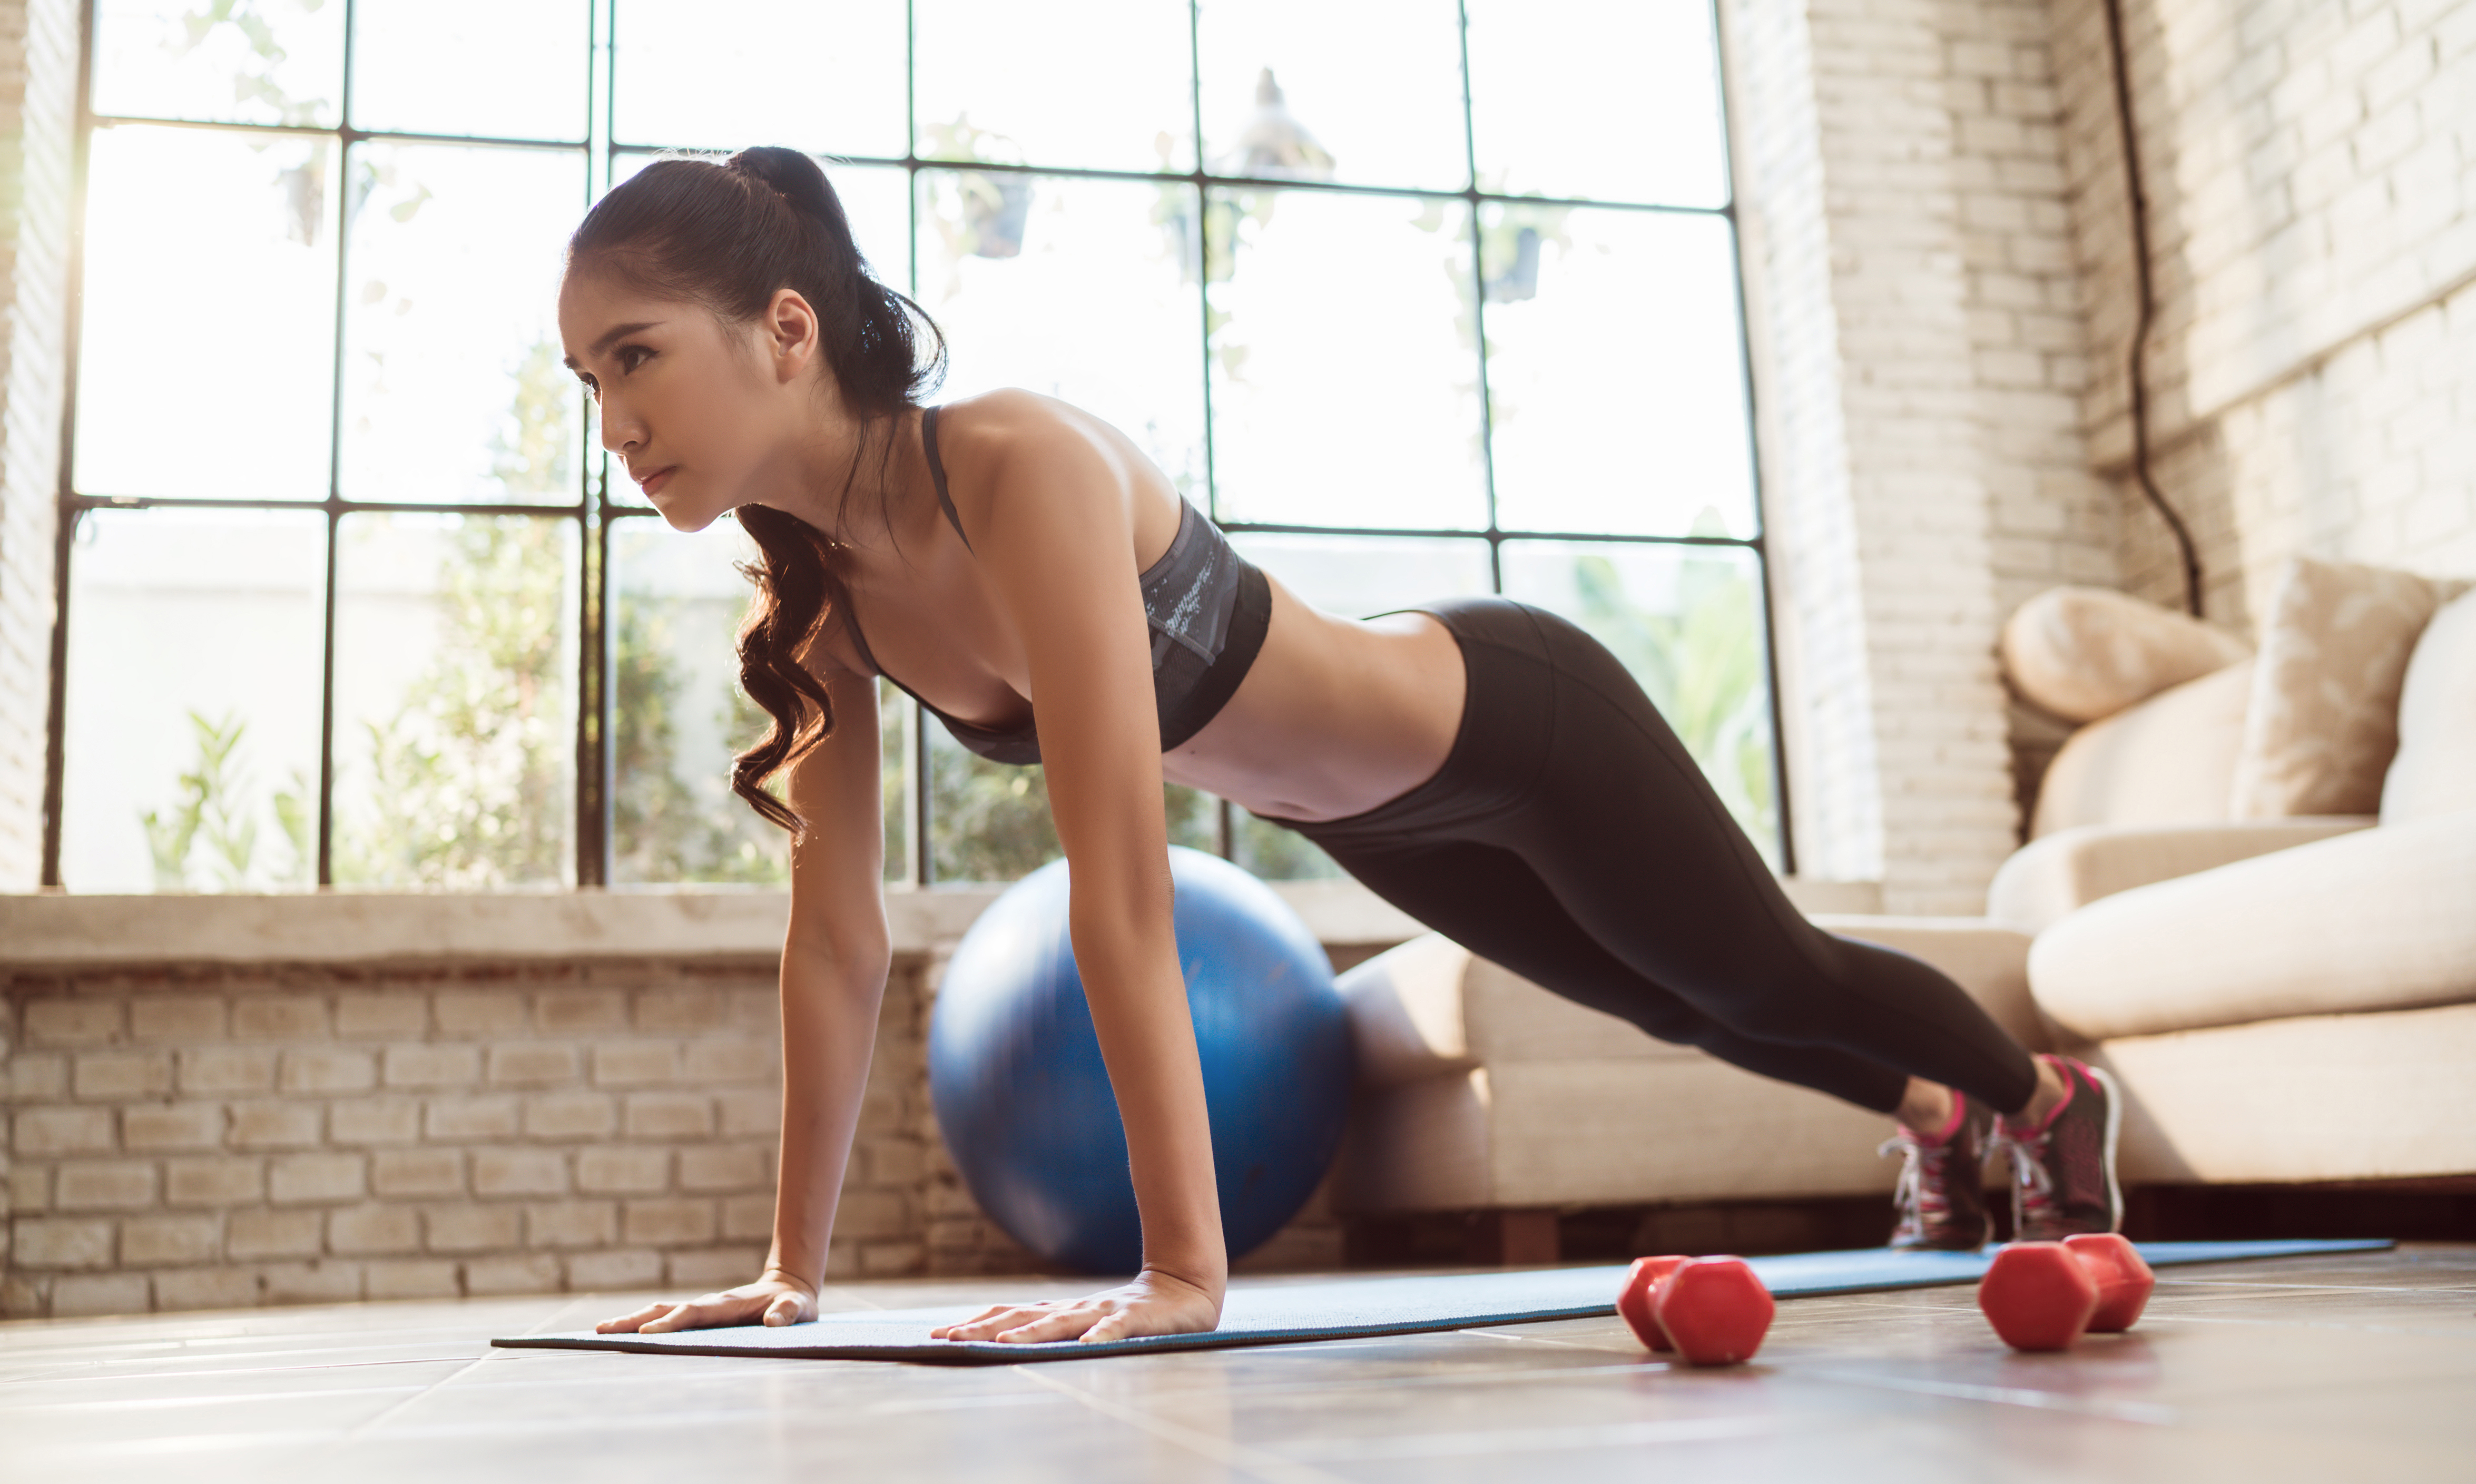 New exercise regime to get your body in shape